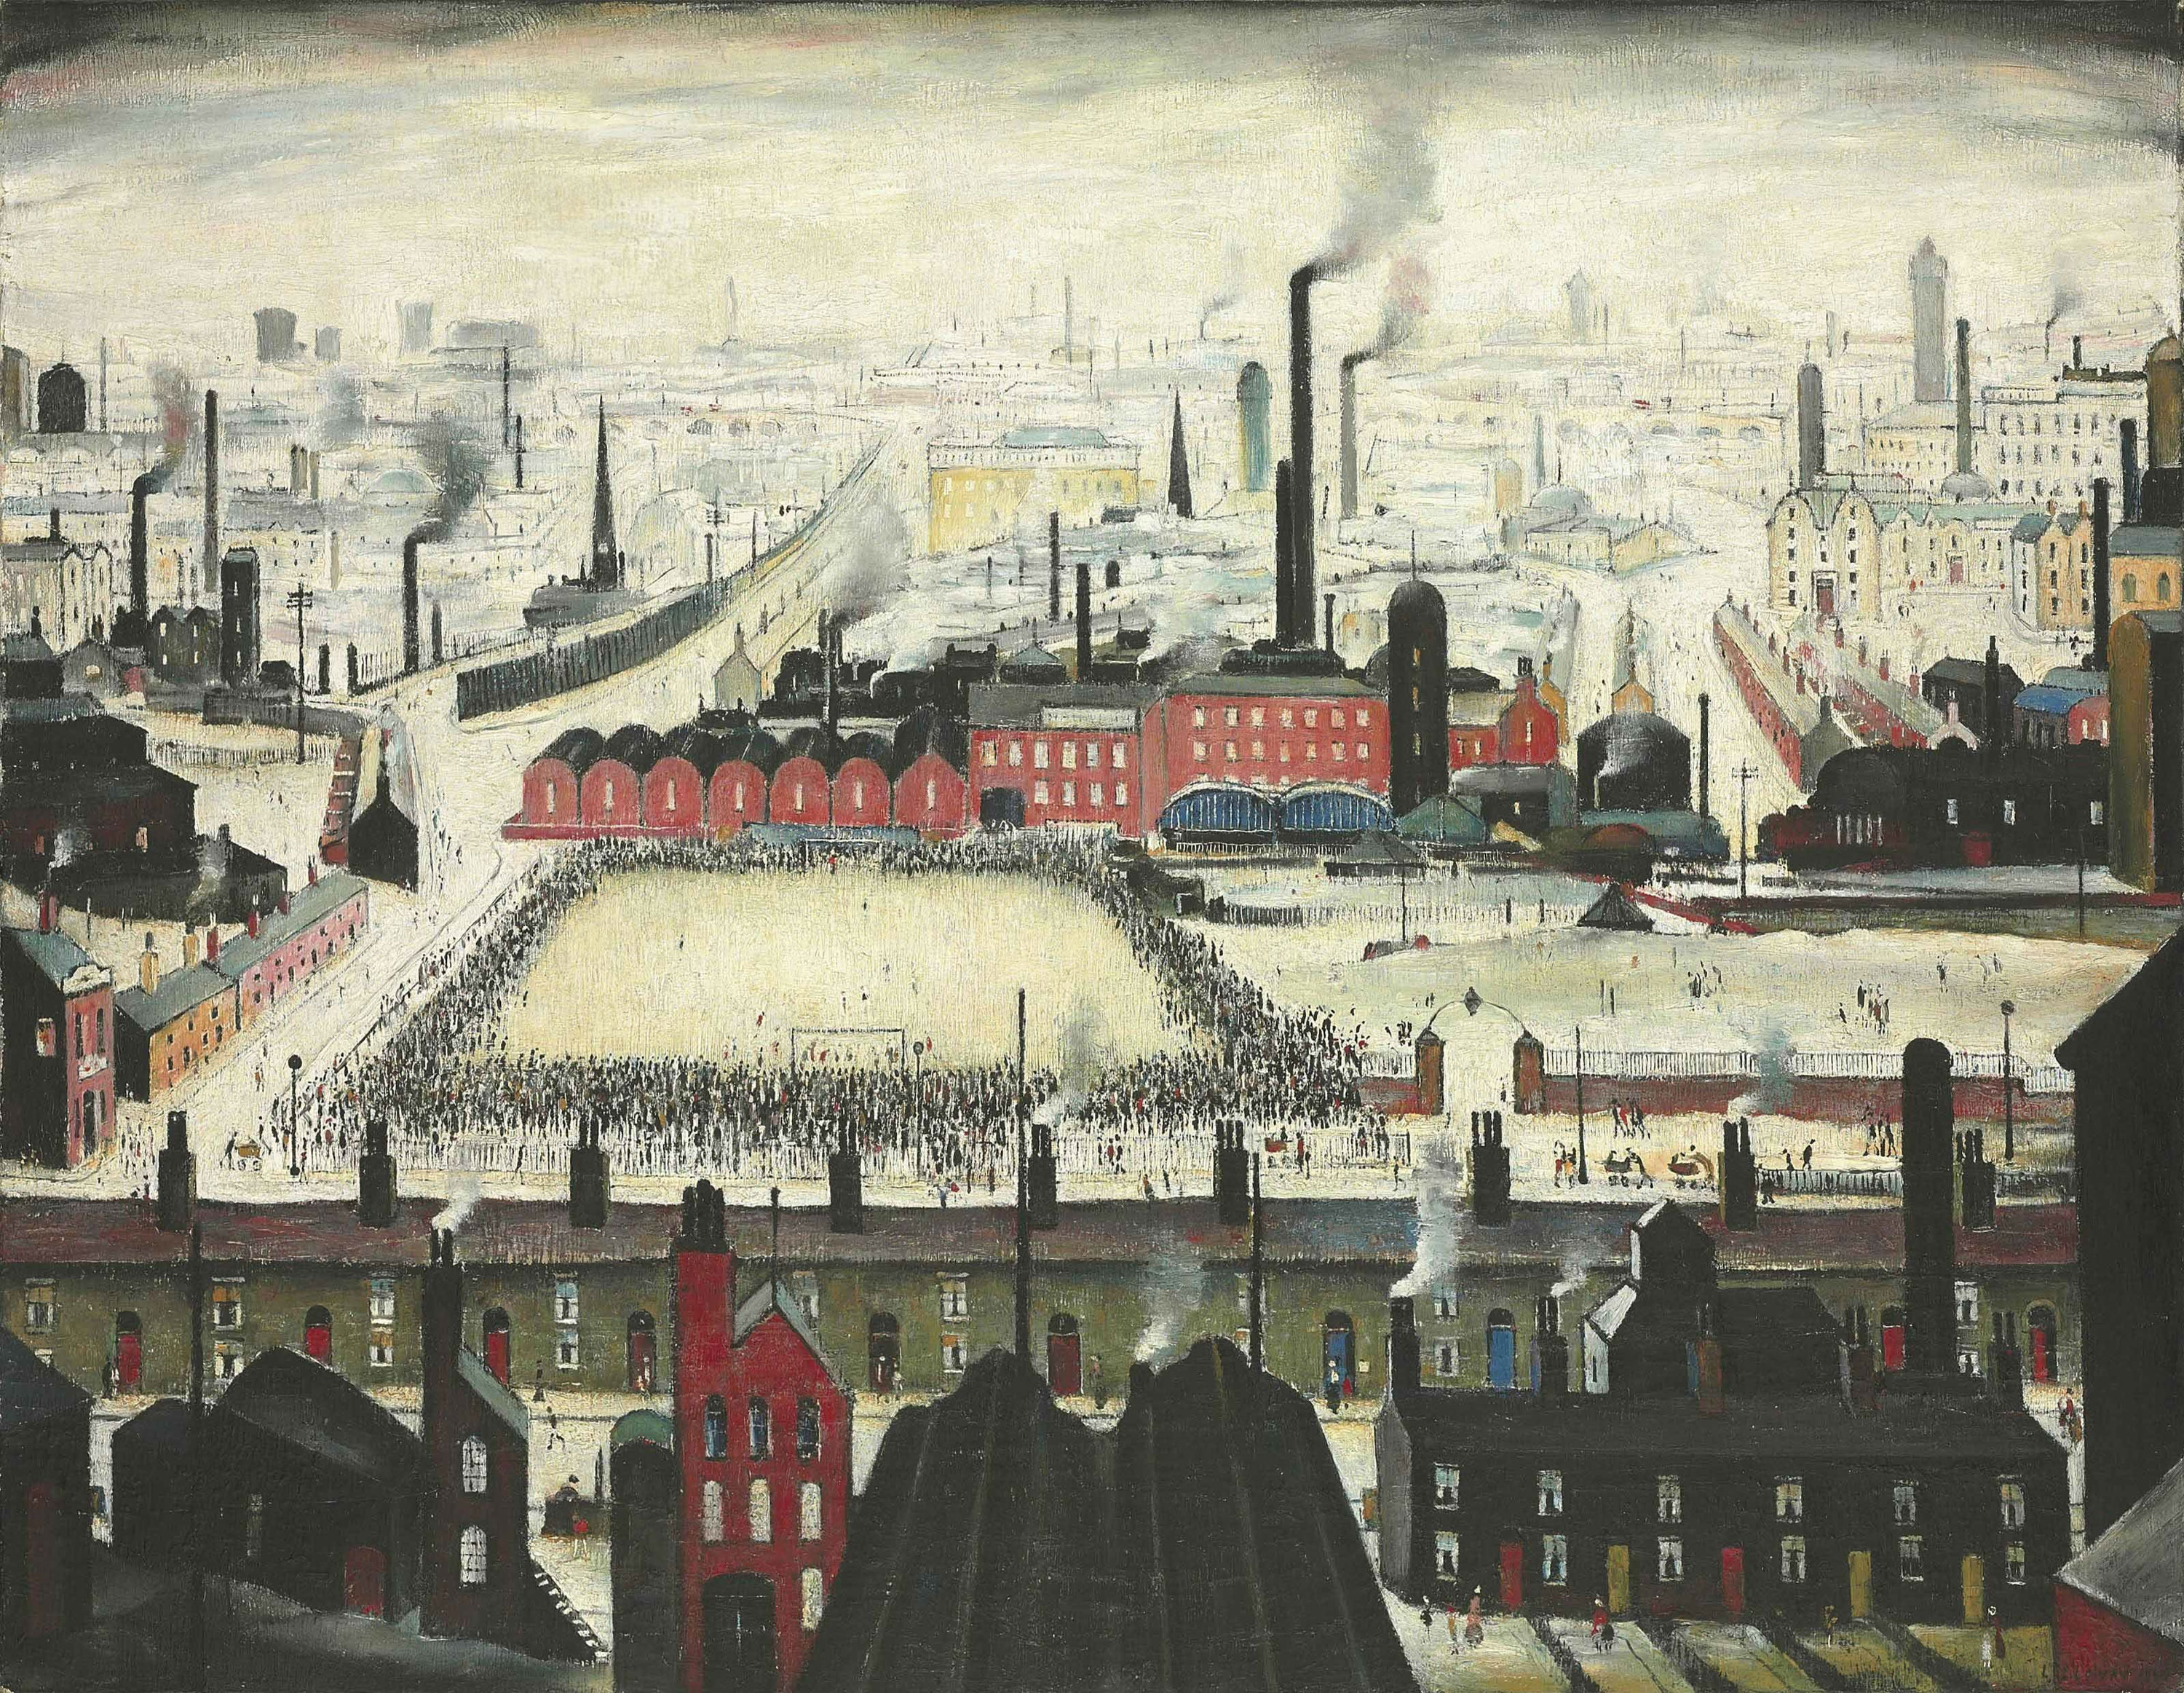 LS Lowry&#8217;s The Football Match Painting Sold for $9.1 Million at Christie&#8217;s